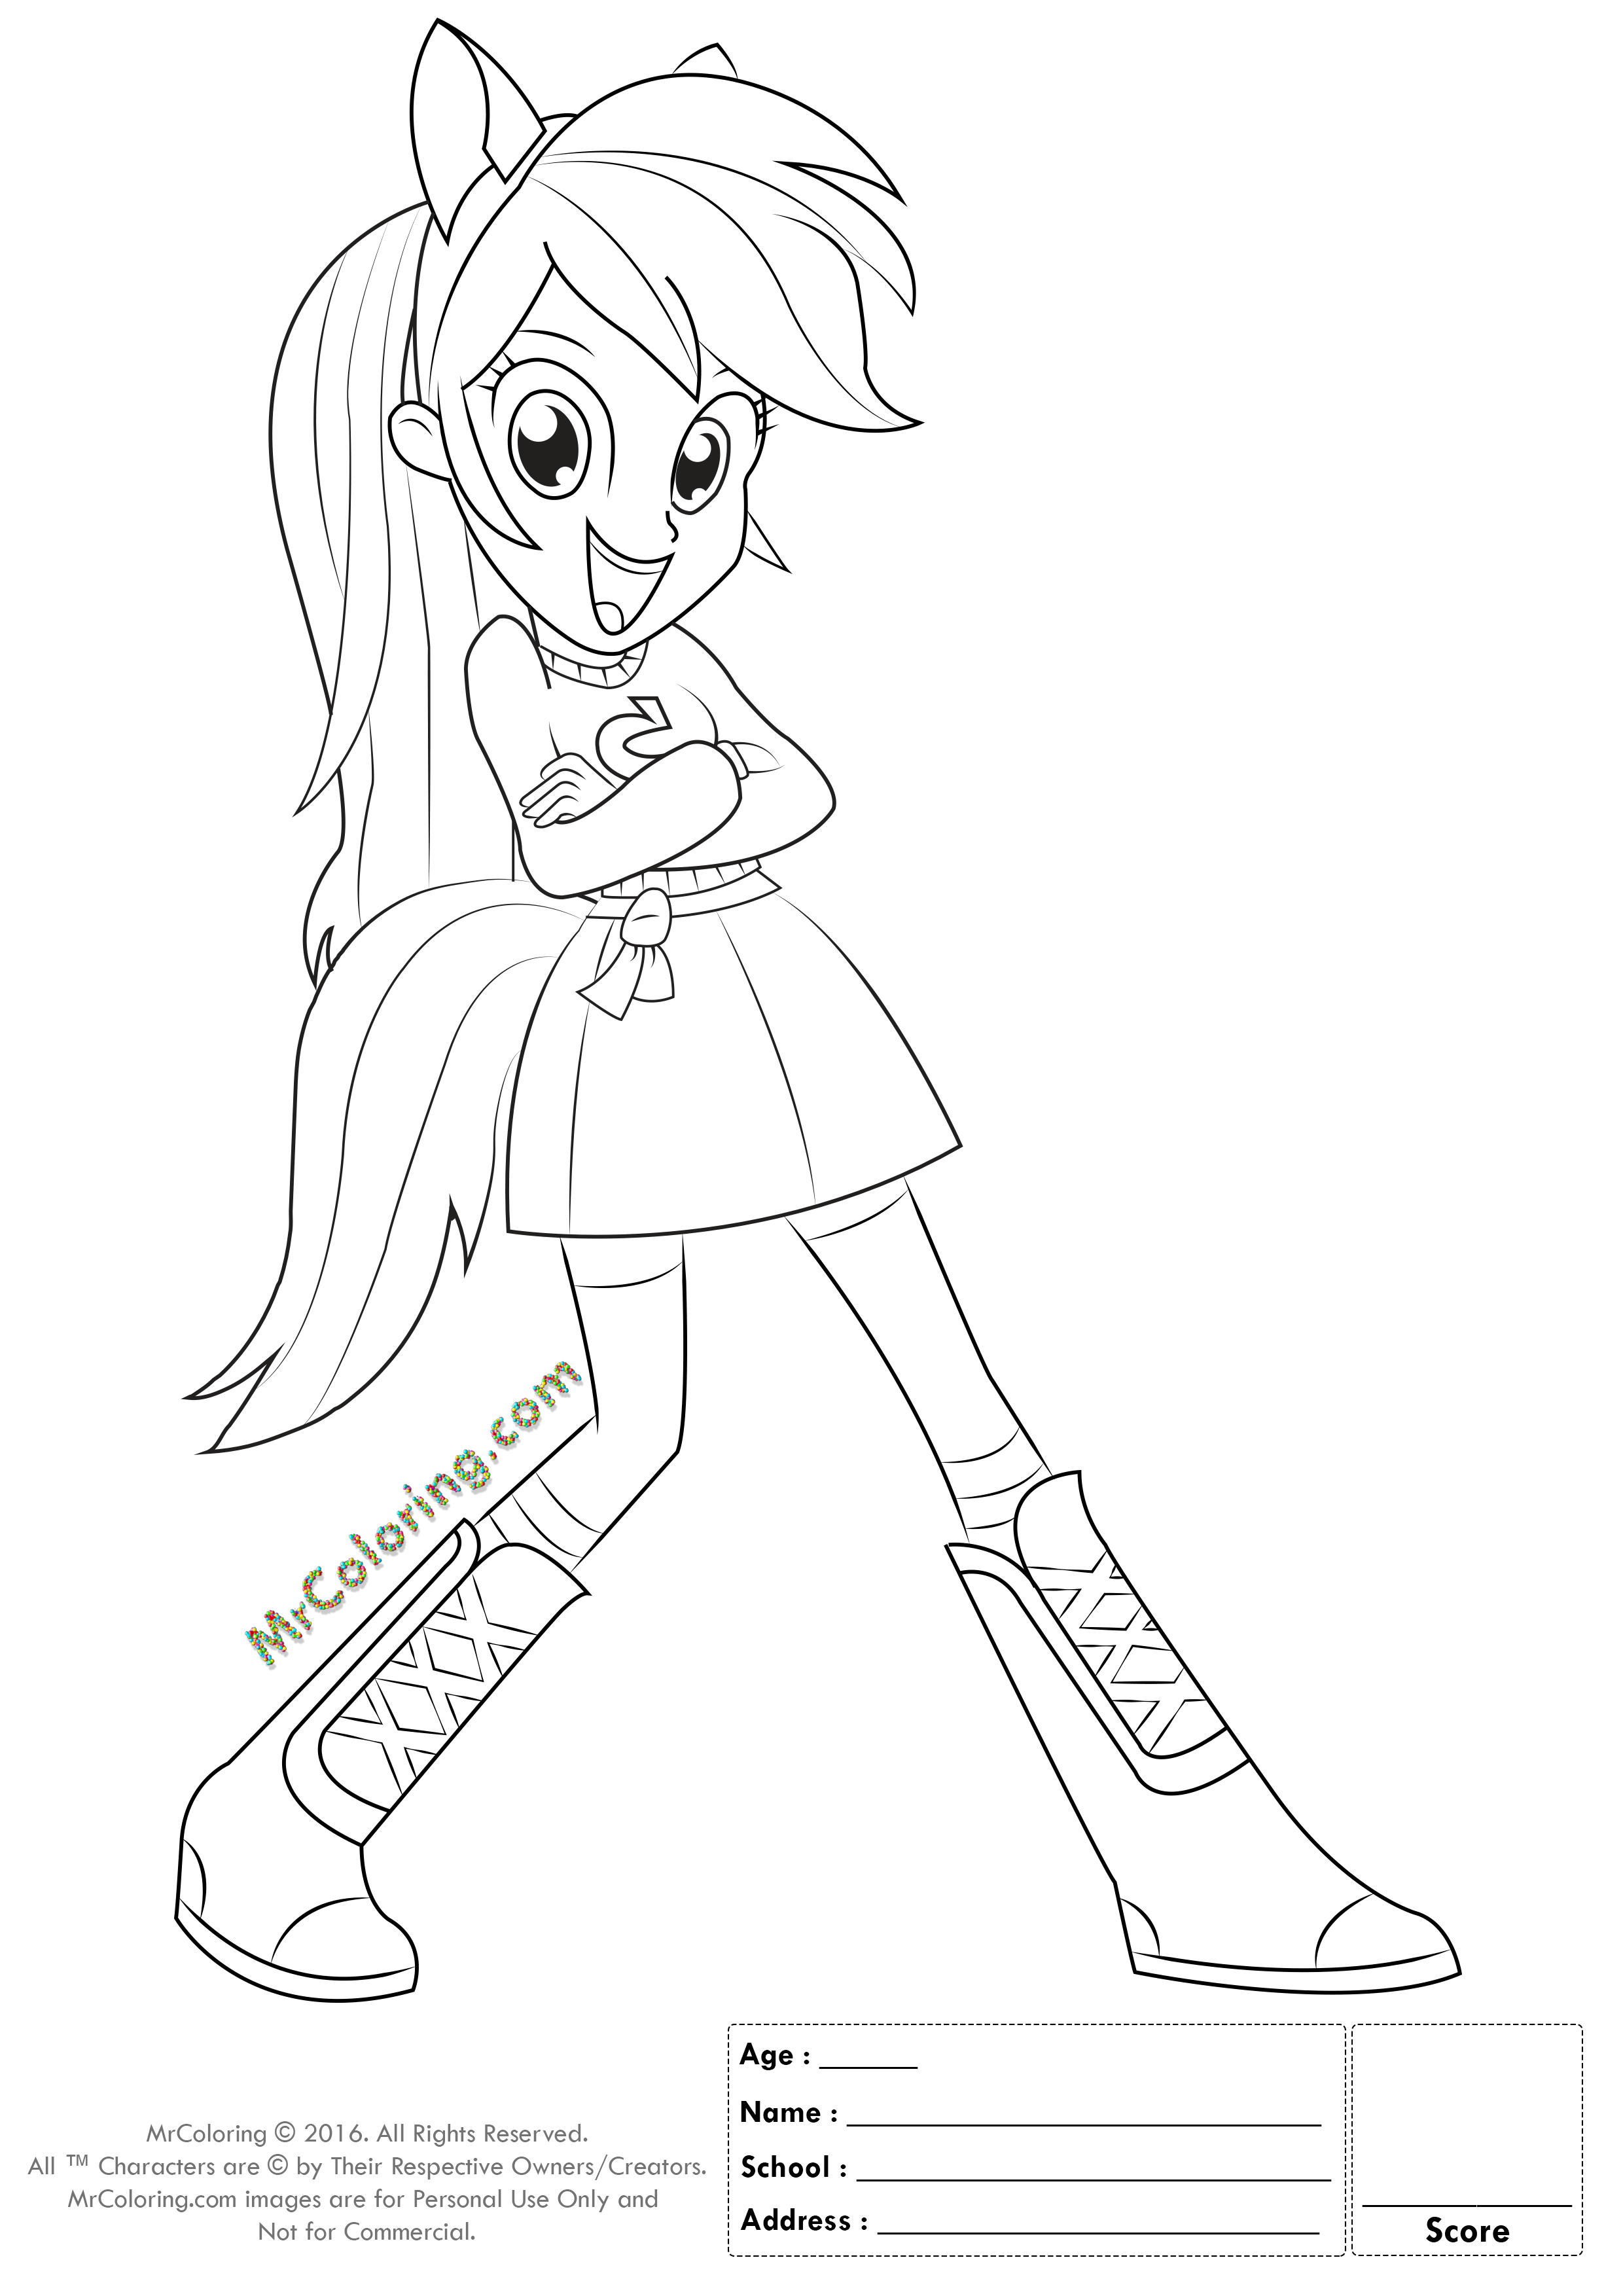 MLP Rainbow Dash Equestria Girls Coloring Pages - 3 | MrColoring.com